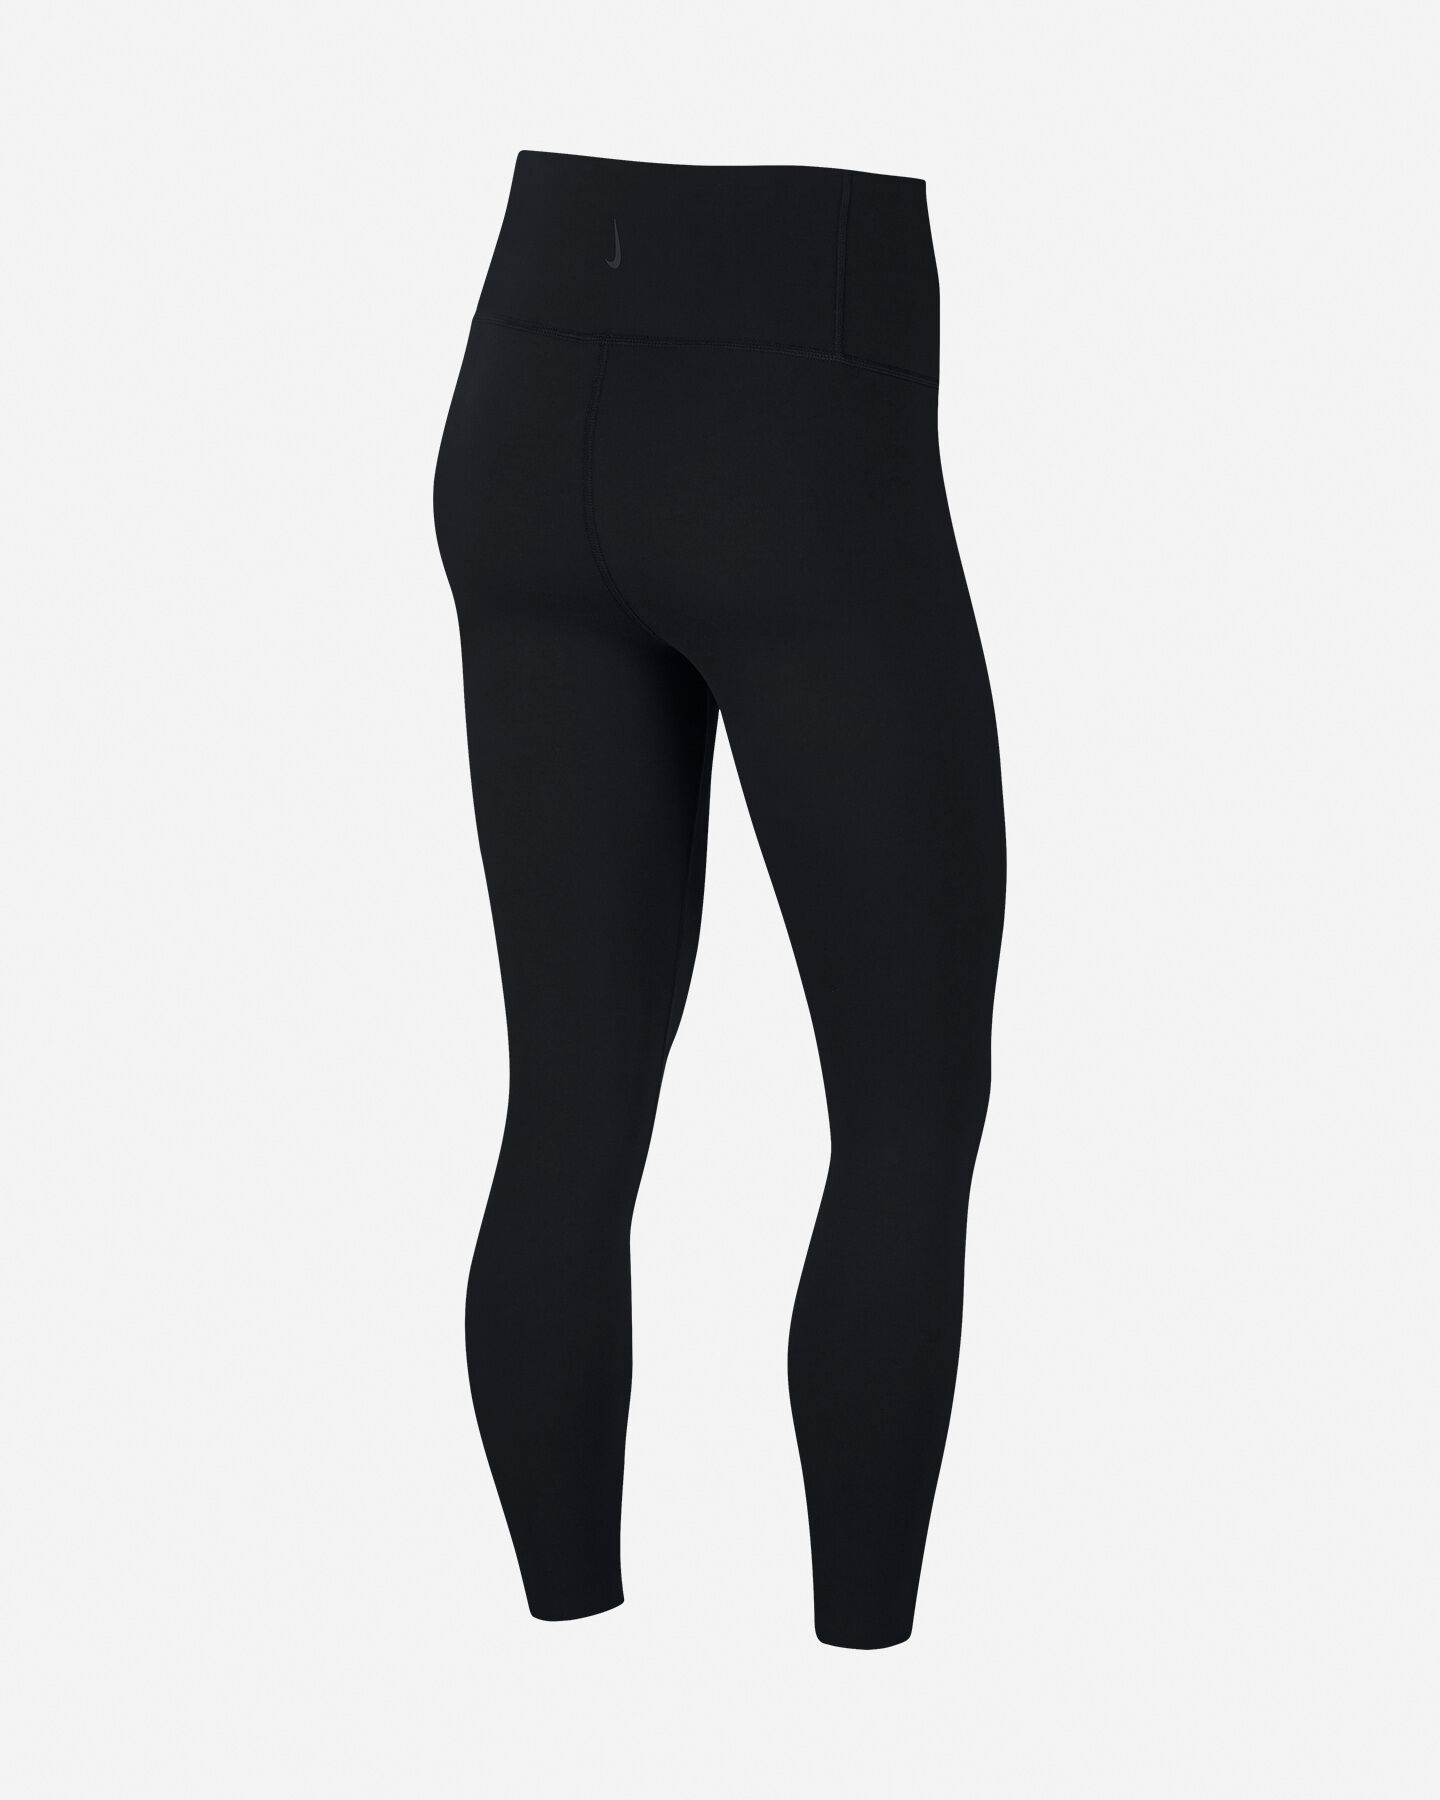 Leggings NIKE HIGH WAIST LUXE 7/8  W S5178312 scatto 1